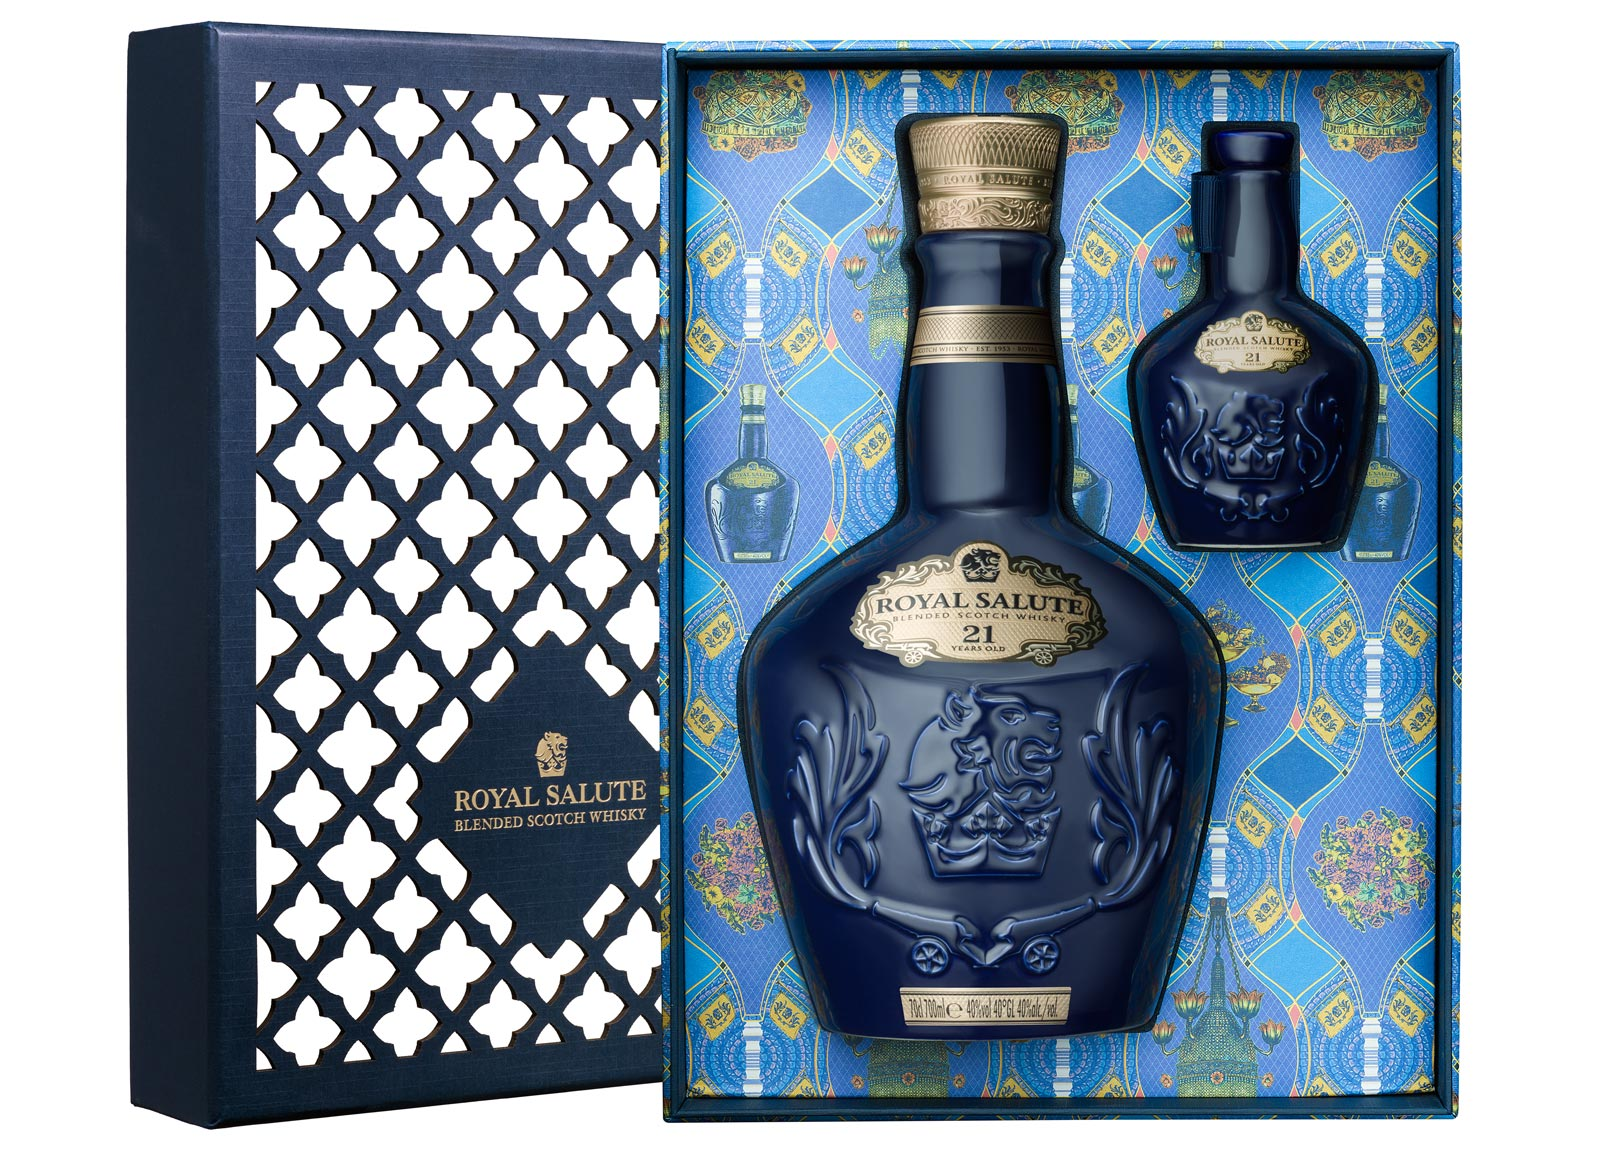 Royal Salute Launches Exquisite Limited Edition Gift Pack For Christmas 6